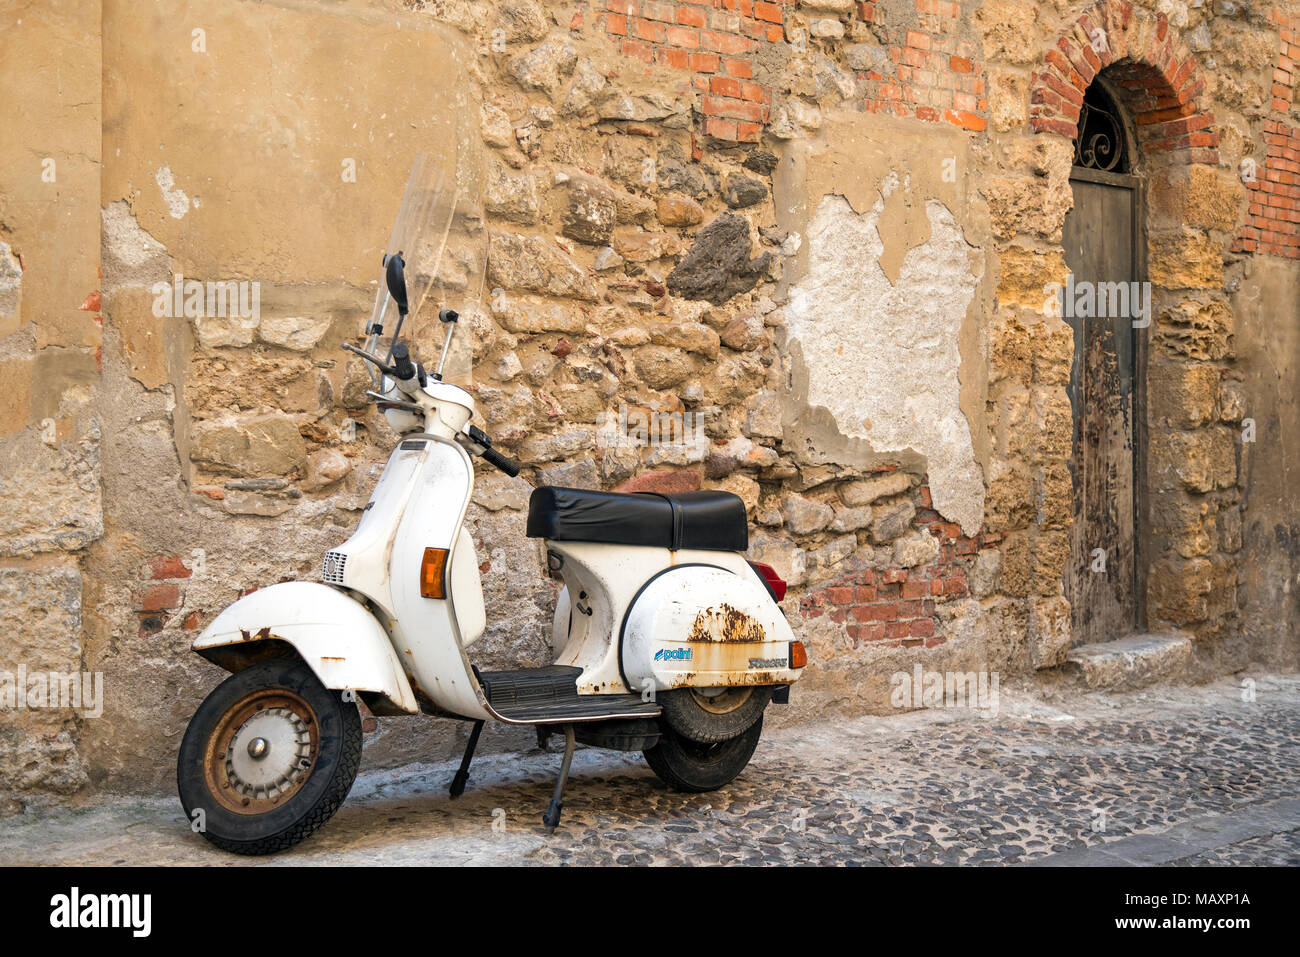 An old rusted white Vespa PX125E scooter parked by the walls of Chiesa della Badiola church in Cefalu, Sicily. - Stock Image